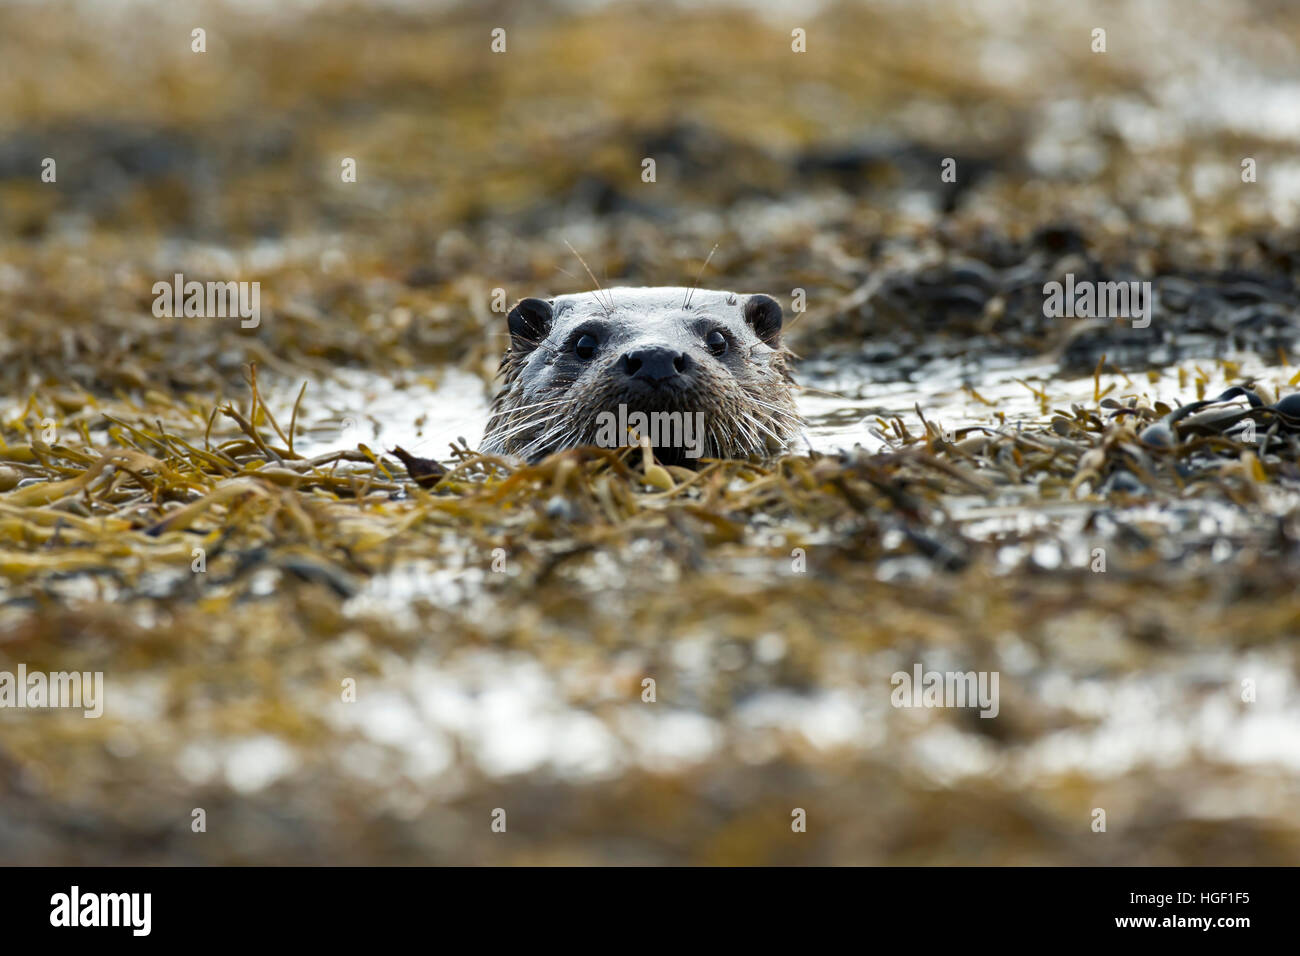 Eurasian otter (Lutra lutra) swimming in the seaweed - Stock Image